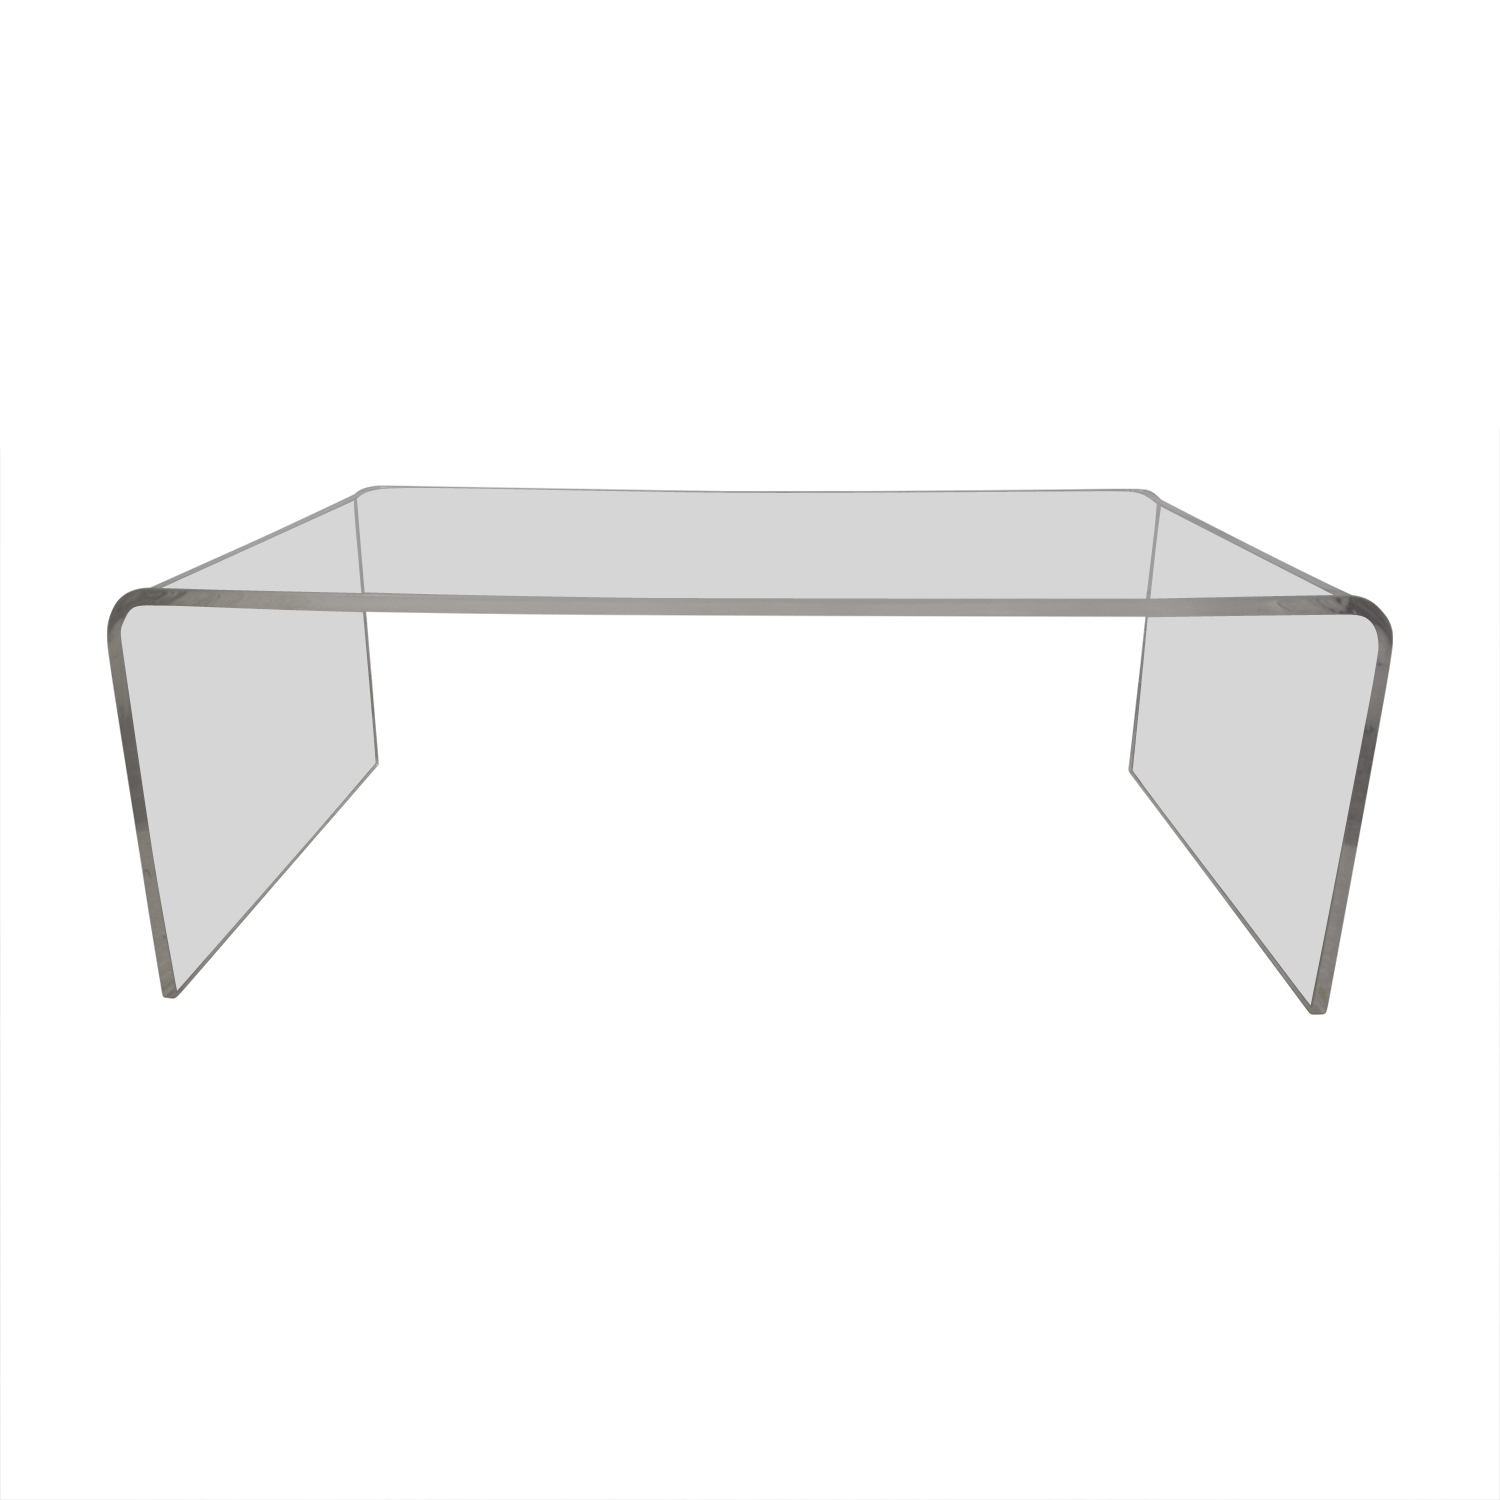 [%widely Used Peekaboo Acrylic Coffee Tables With 61% Off – Cb2 Cb2 Peekaboo Acrylic Ghost Tall Coffee Table / Tables|61% Off – Cb2 Cb2 Peekaboo Acrylic Ghost Tall Coffee Table / Tables Pertaining To Trendy Peekaboo Acrylic Coffee Tables%] (View 2 of 20)